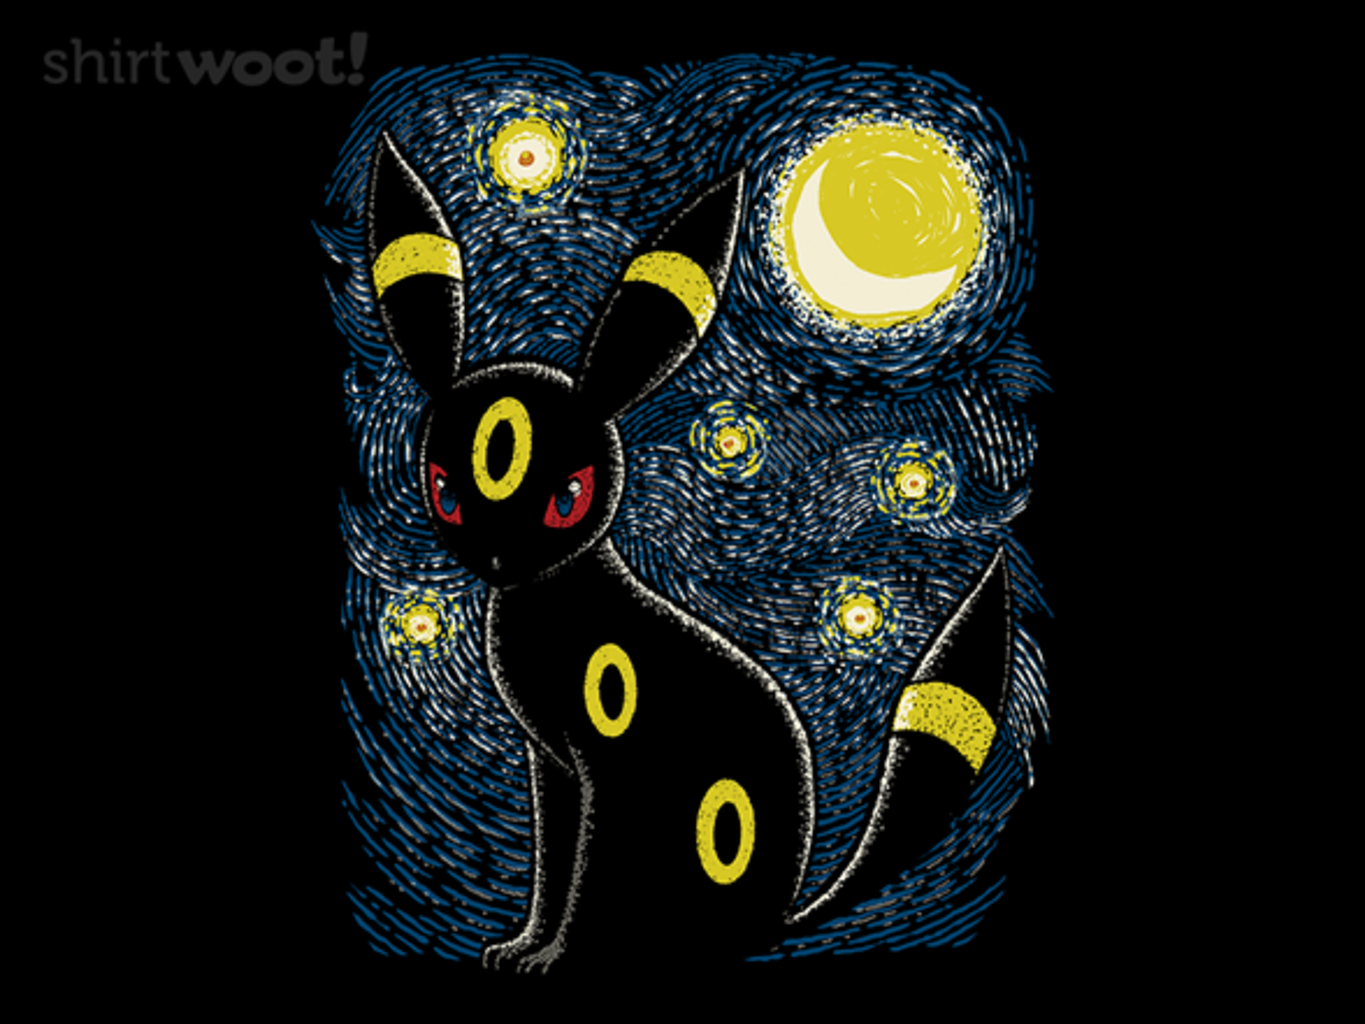 Woot!: Starry Psychic Night